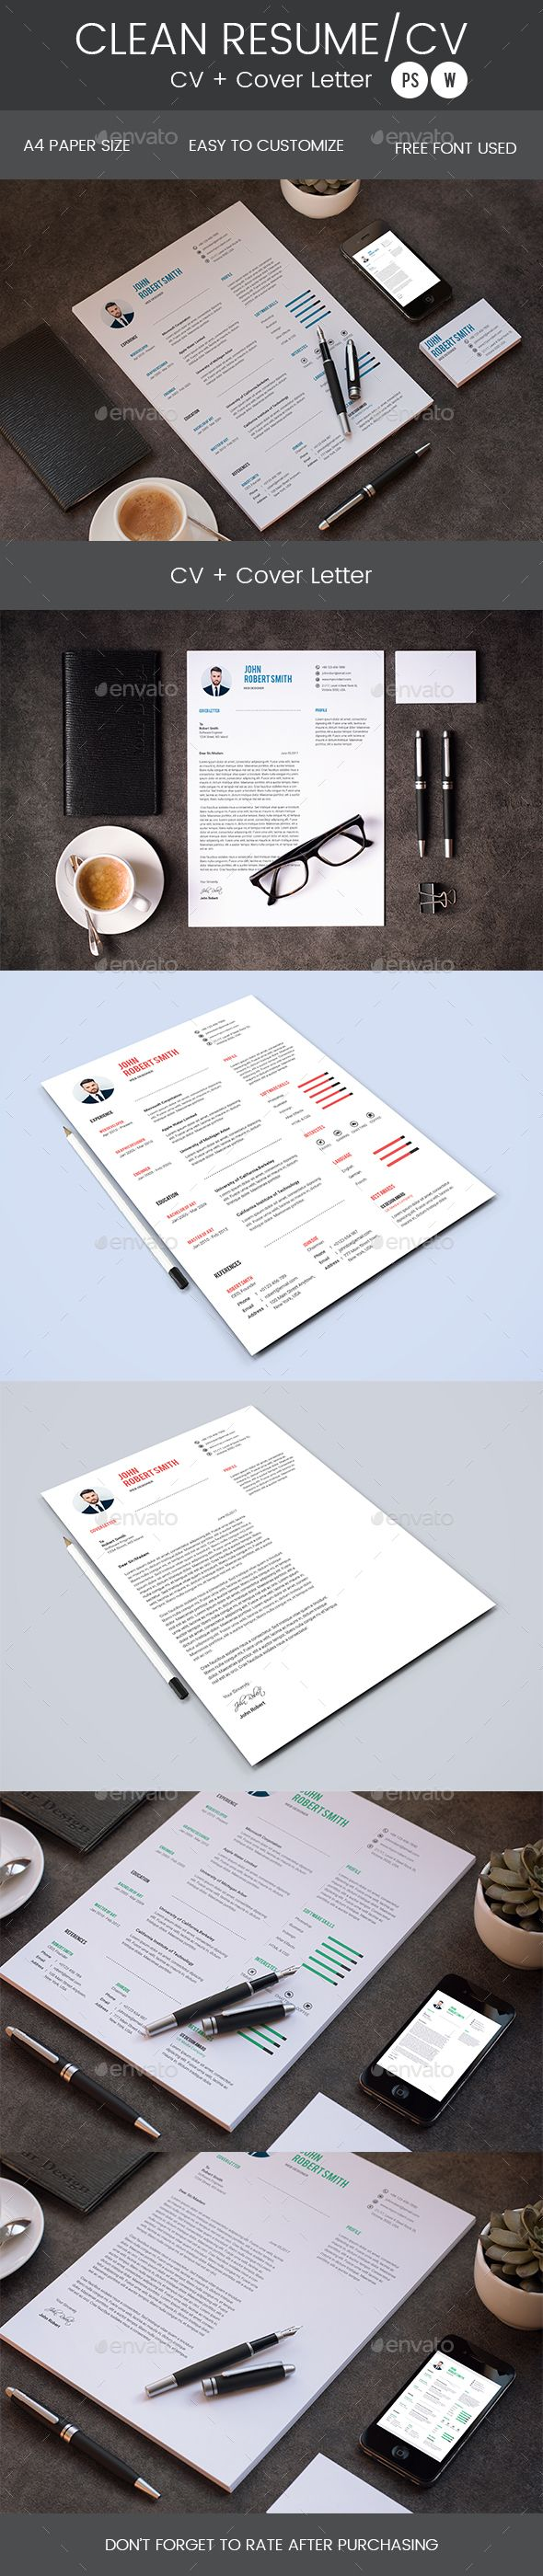 Clean Resume & Cover Letter Template PSD, MS Word